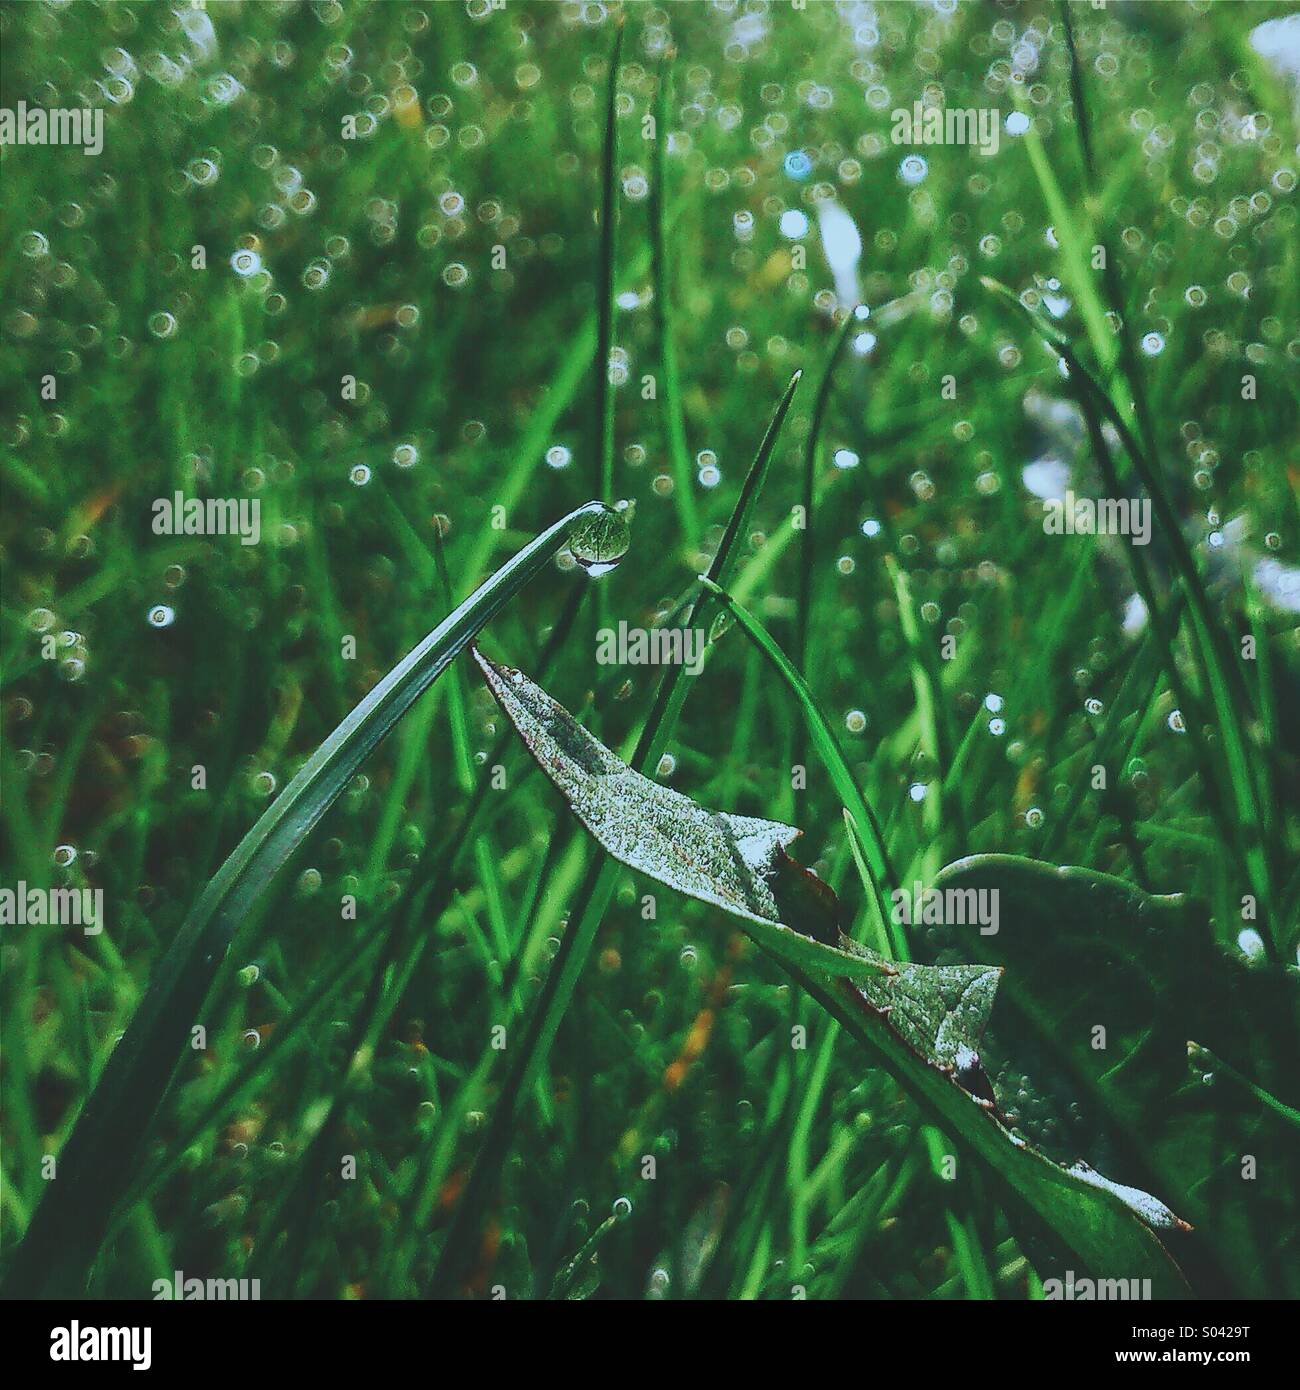 Morning dew on the lawn - Stock Image